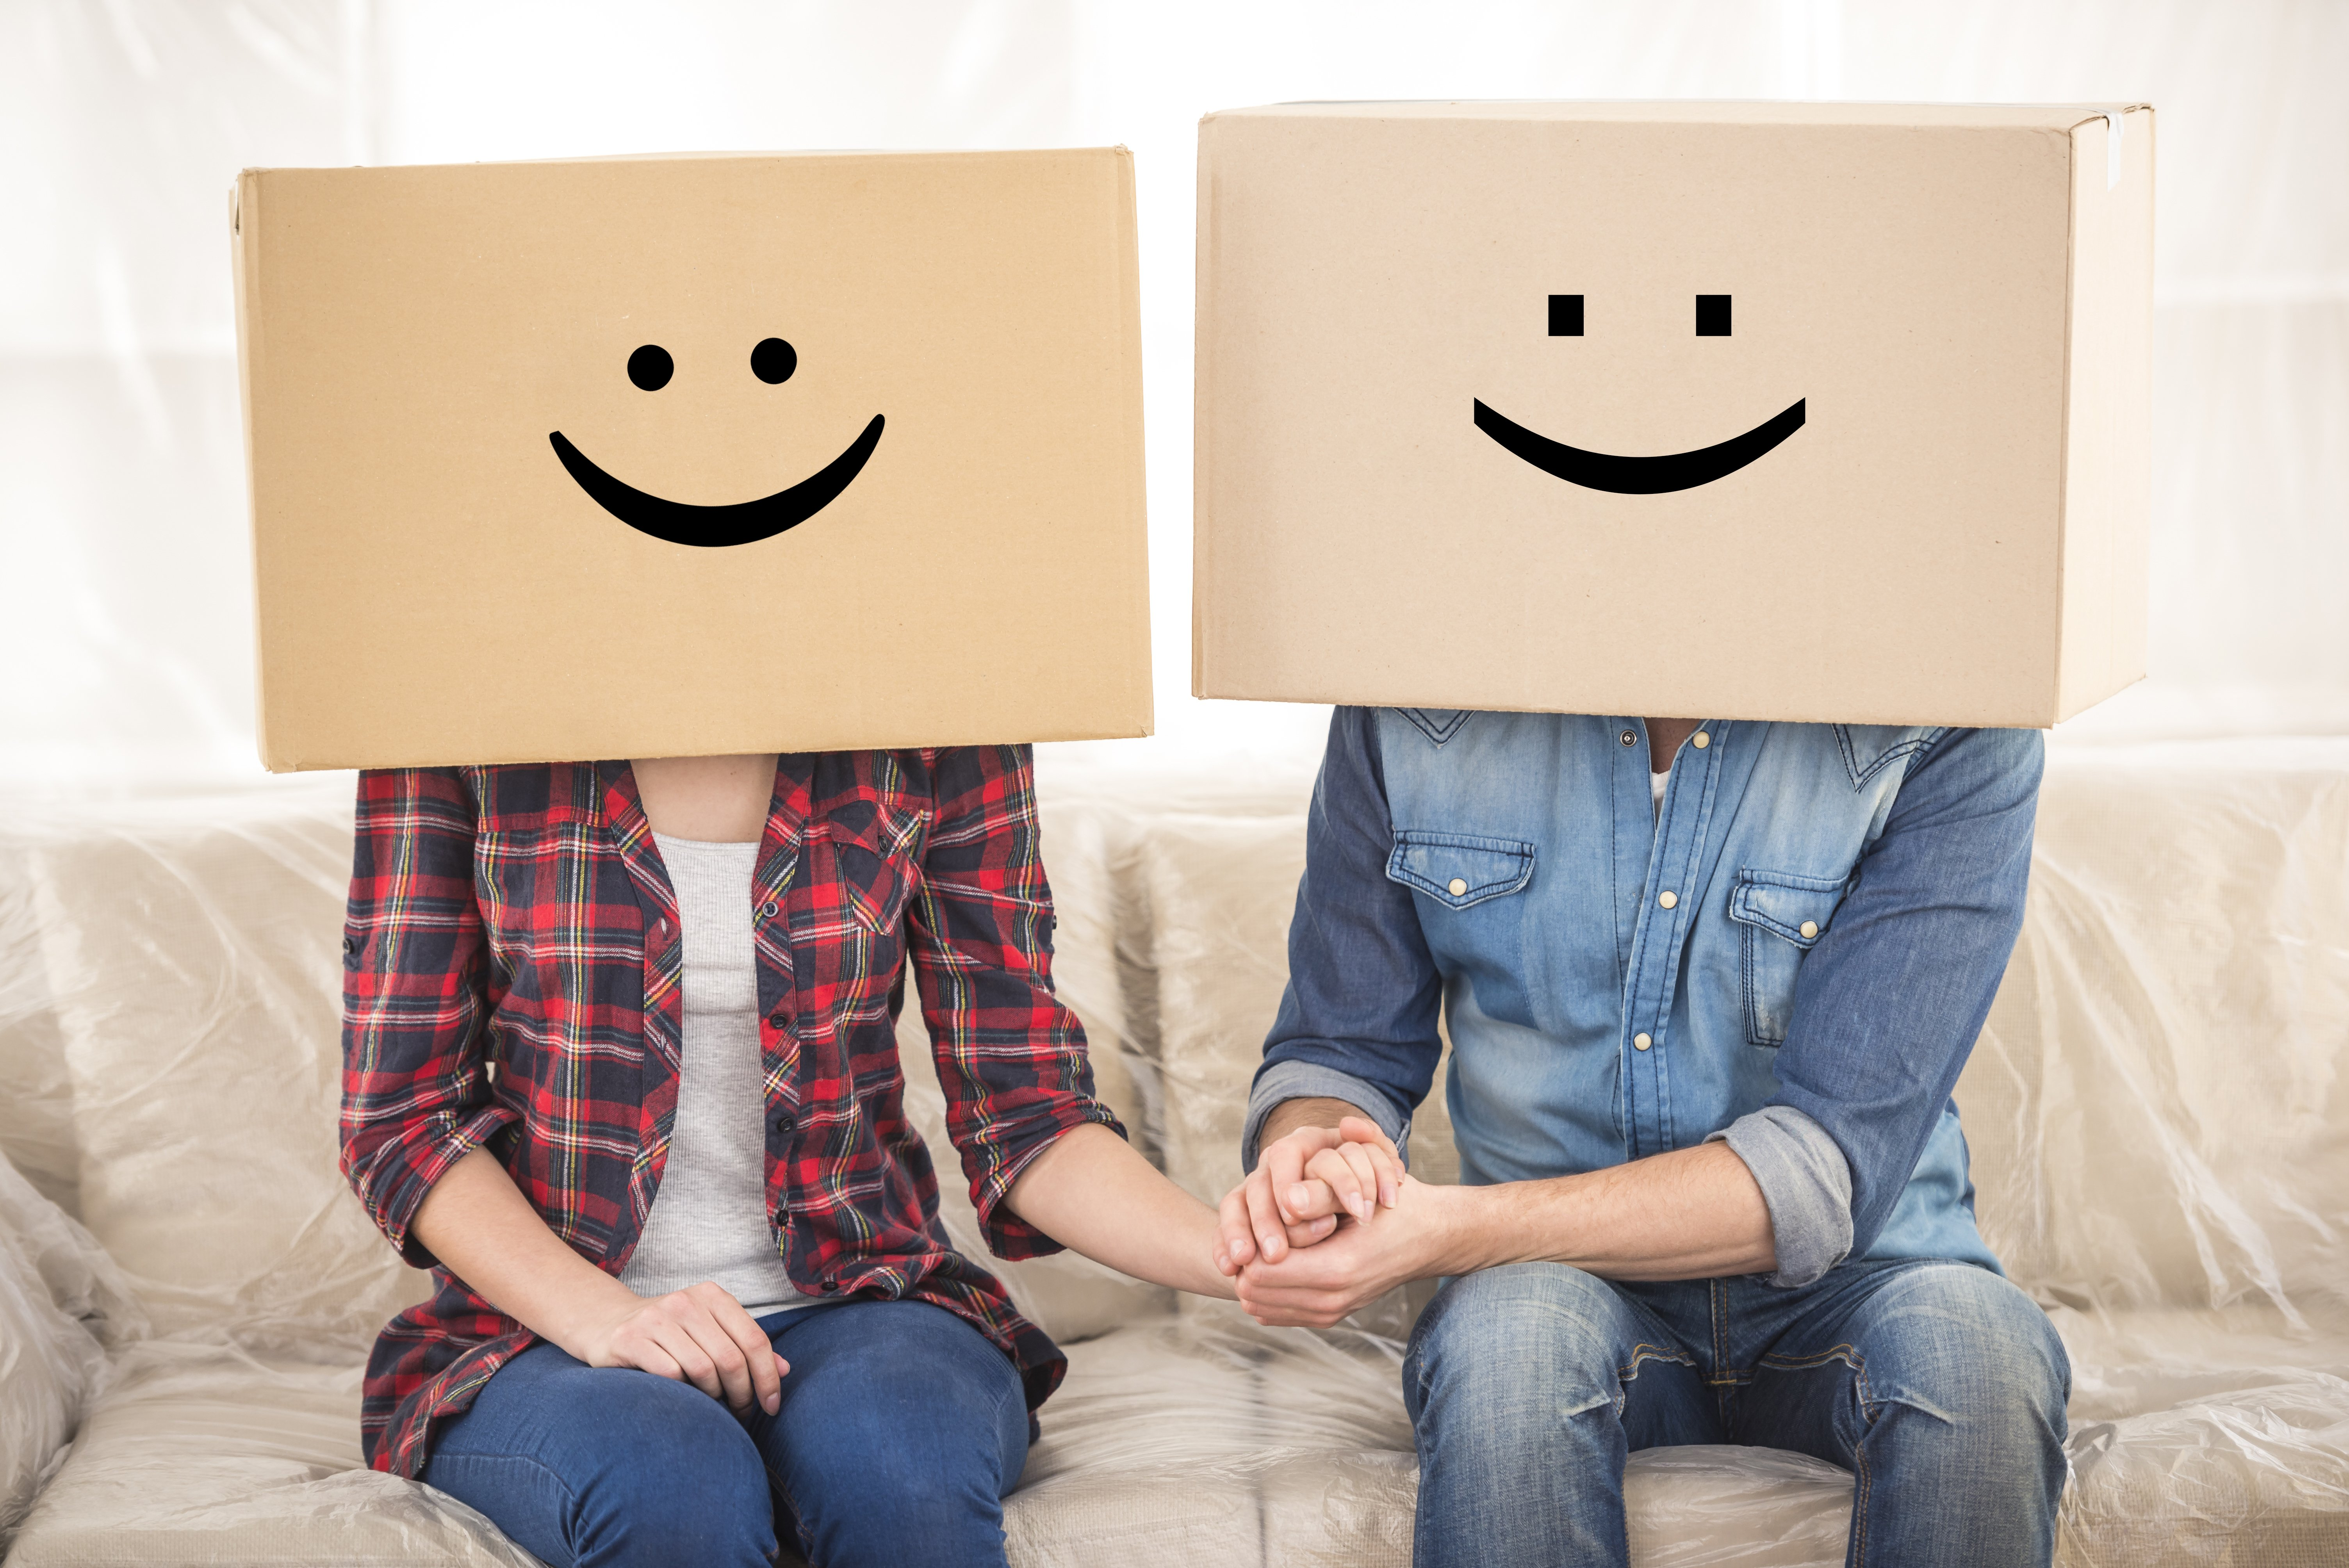 A couple holding hands on a cream sofa, wearing boxes with smiley faces over their heads